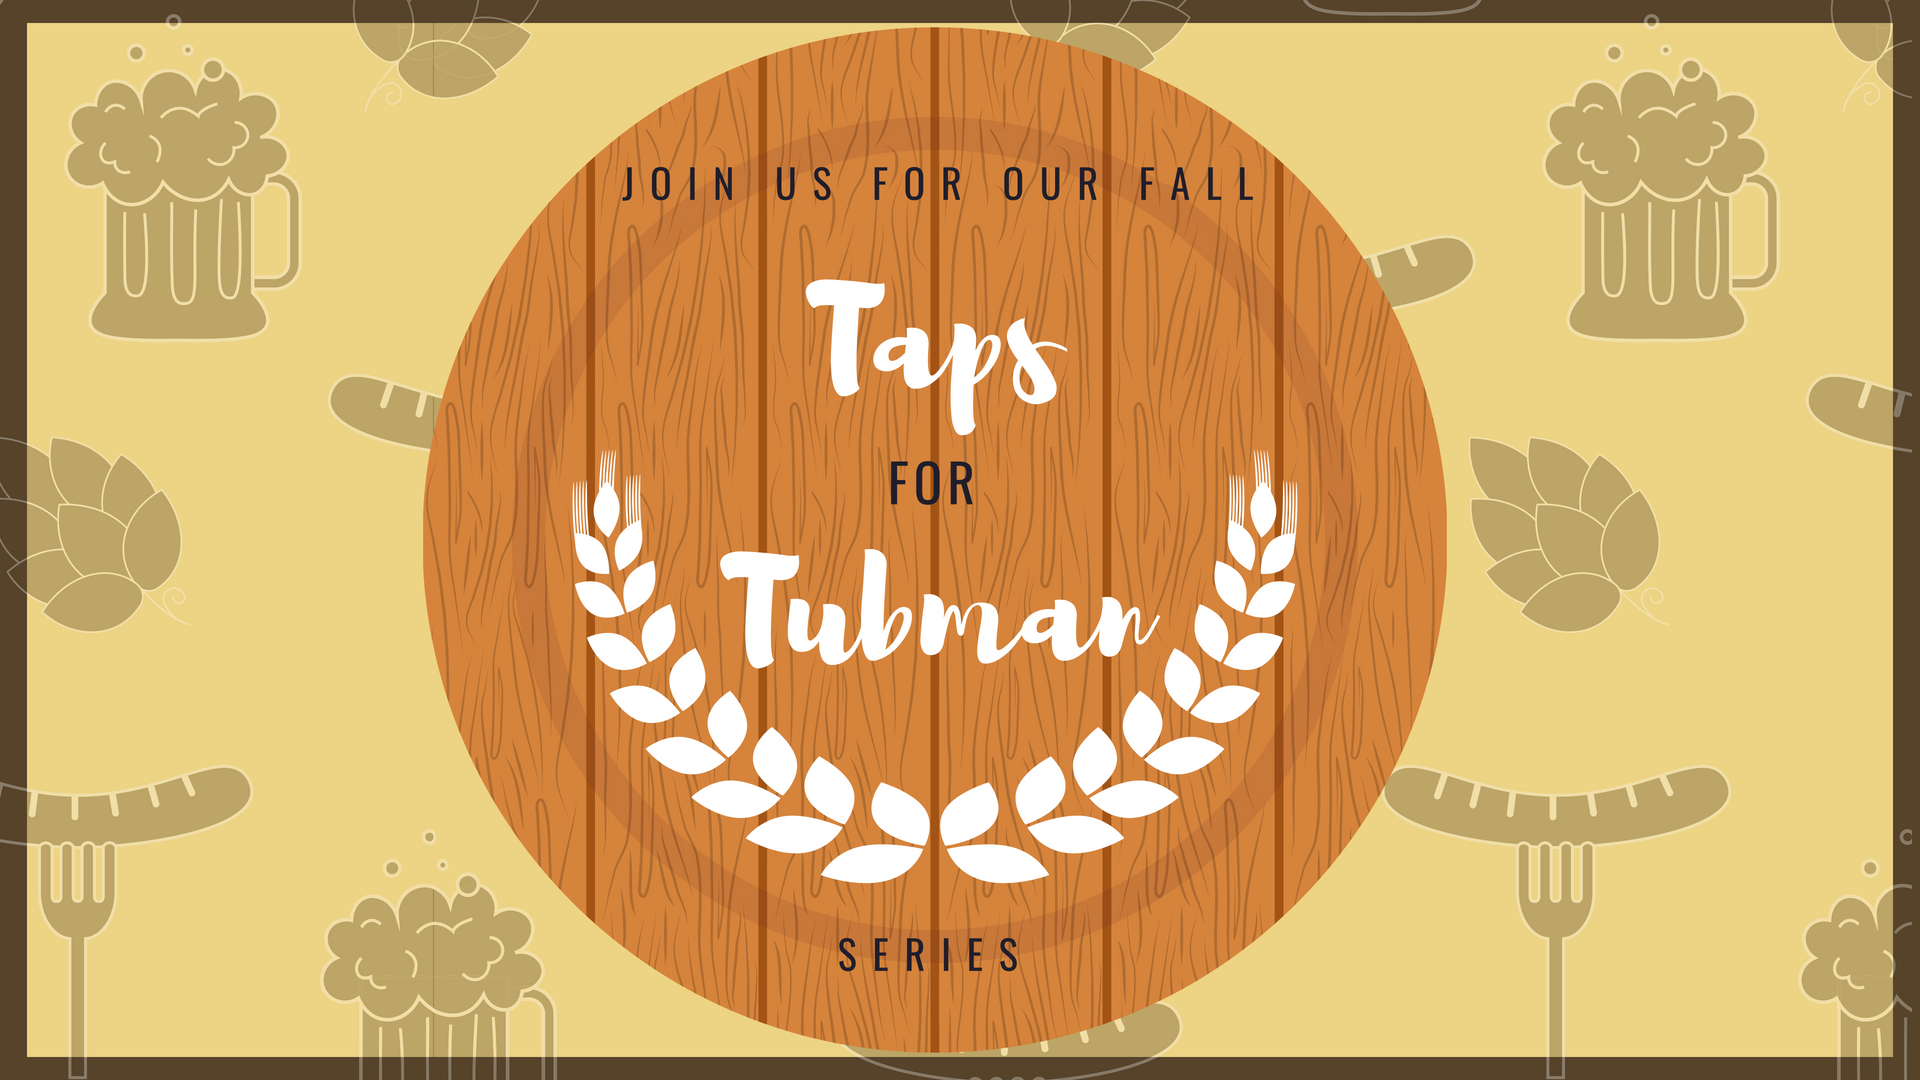 Fall Taps for Tubman series